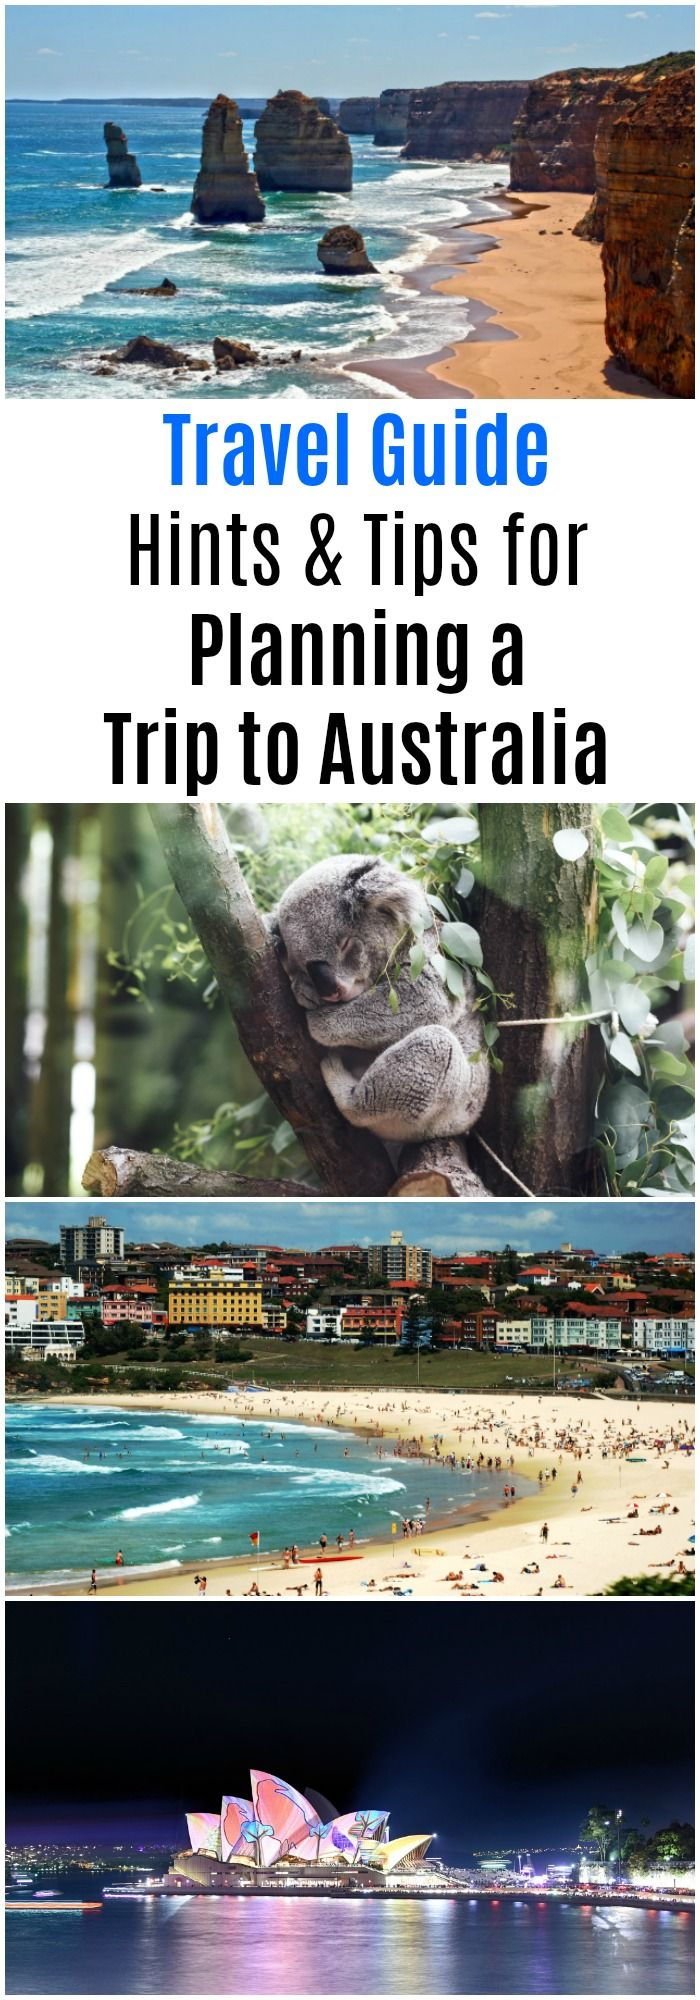 Travel Guide Hints & Tips for Planning a Trip to Australia #Australia #TravelAdvice #TravelTips